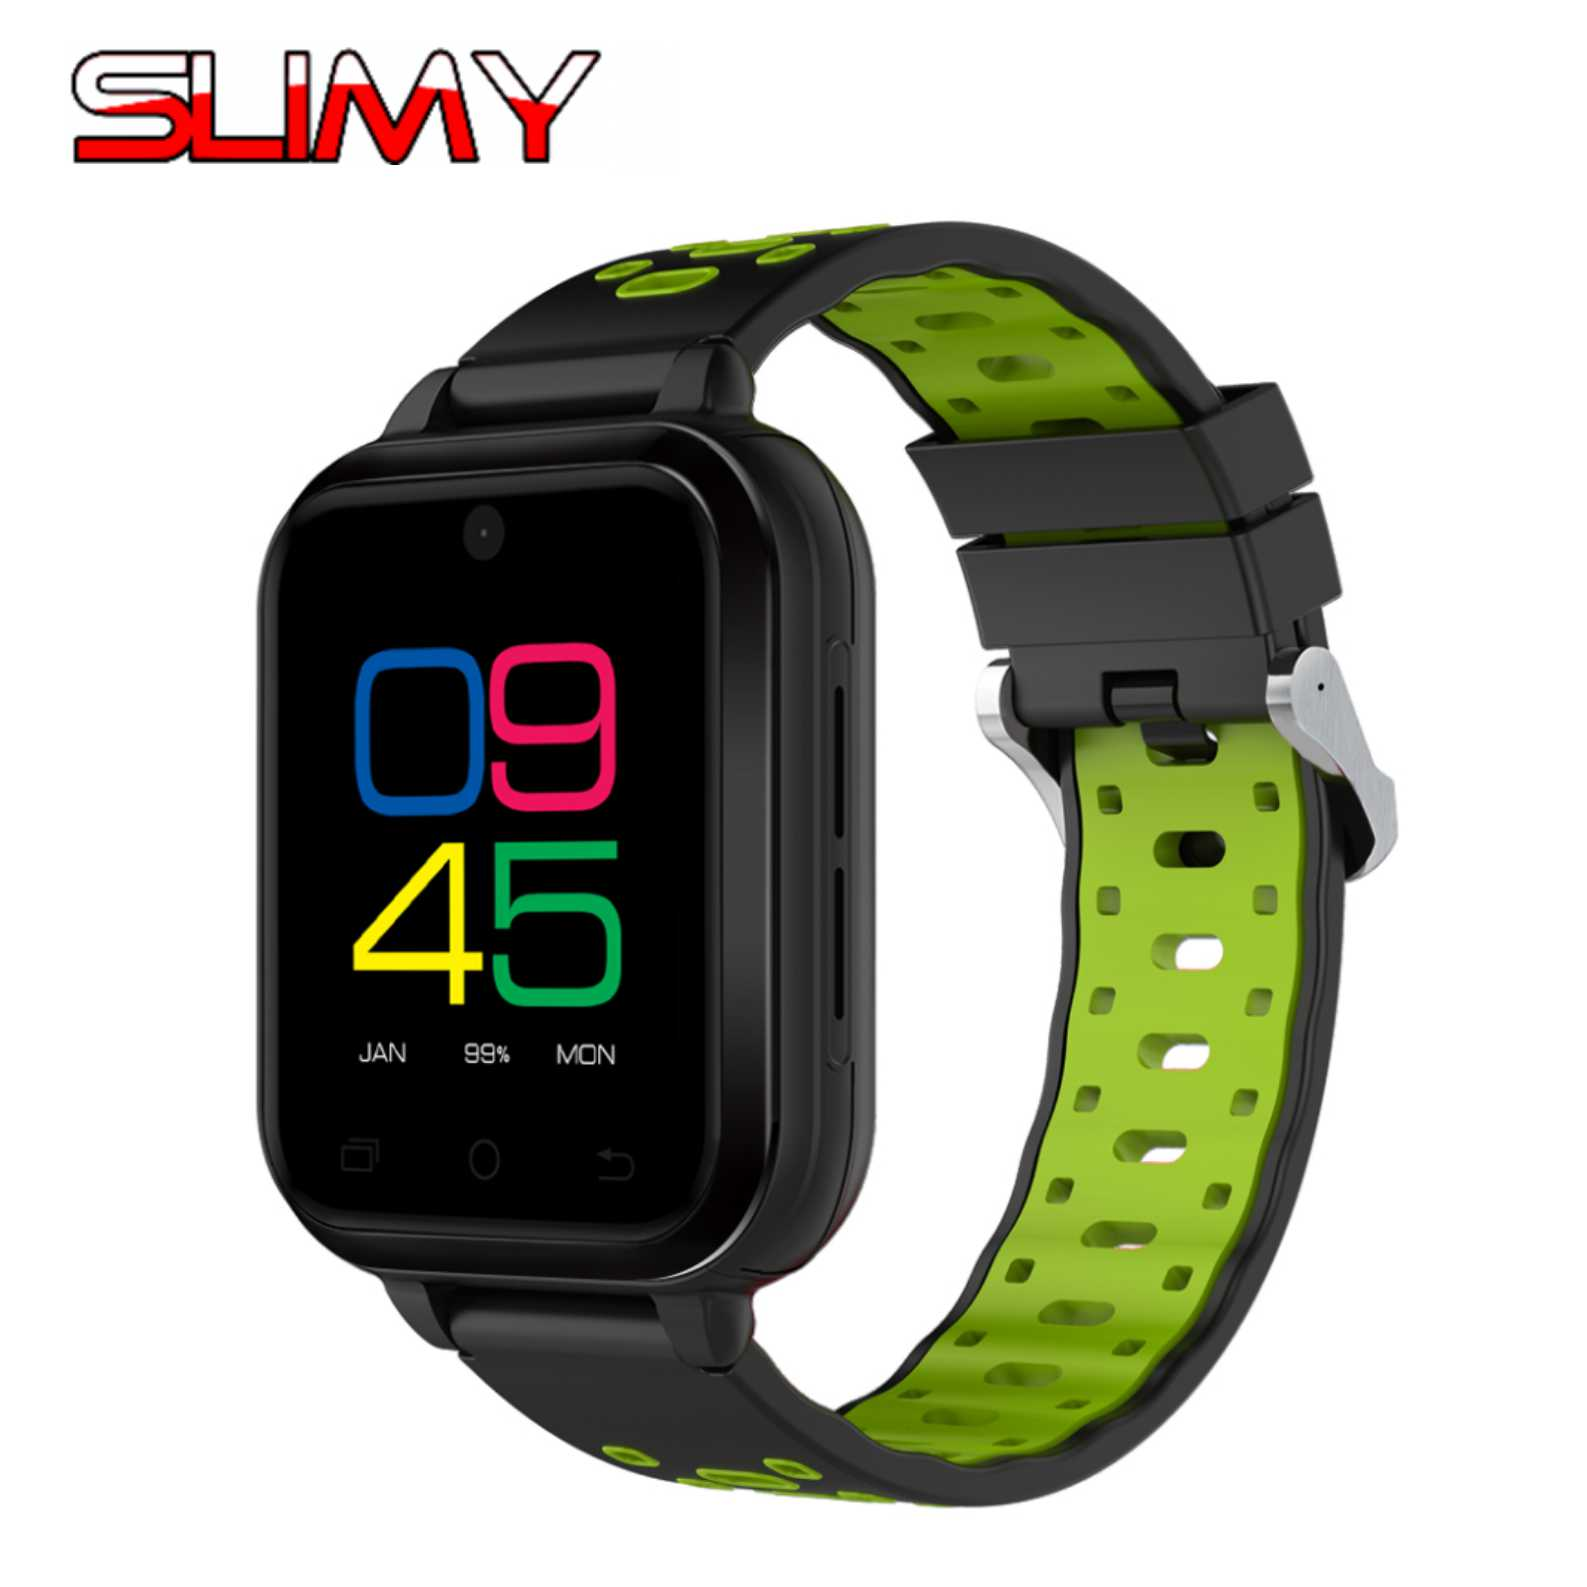 Slimy New 4G LTE Smart Watch Q1 Pro Android 6.0 MTK6737 Quad Core 1G Ram 8G Rom Heart Rate Monitor Wifi GPS SIM Card 2MP Camera